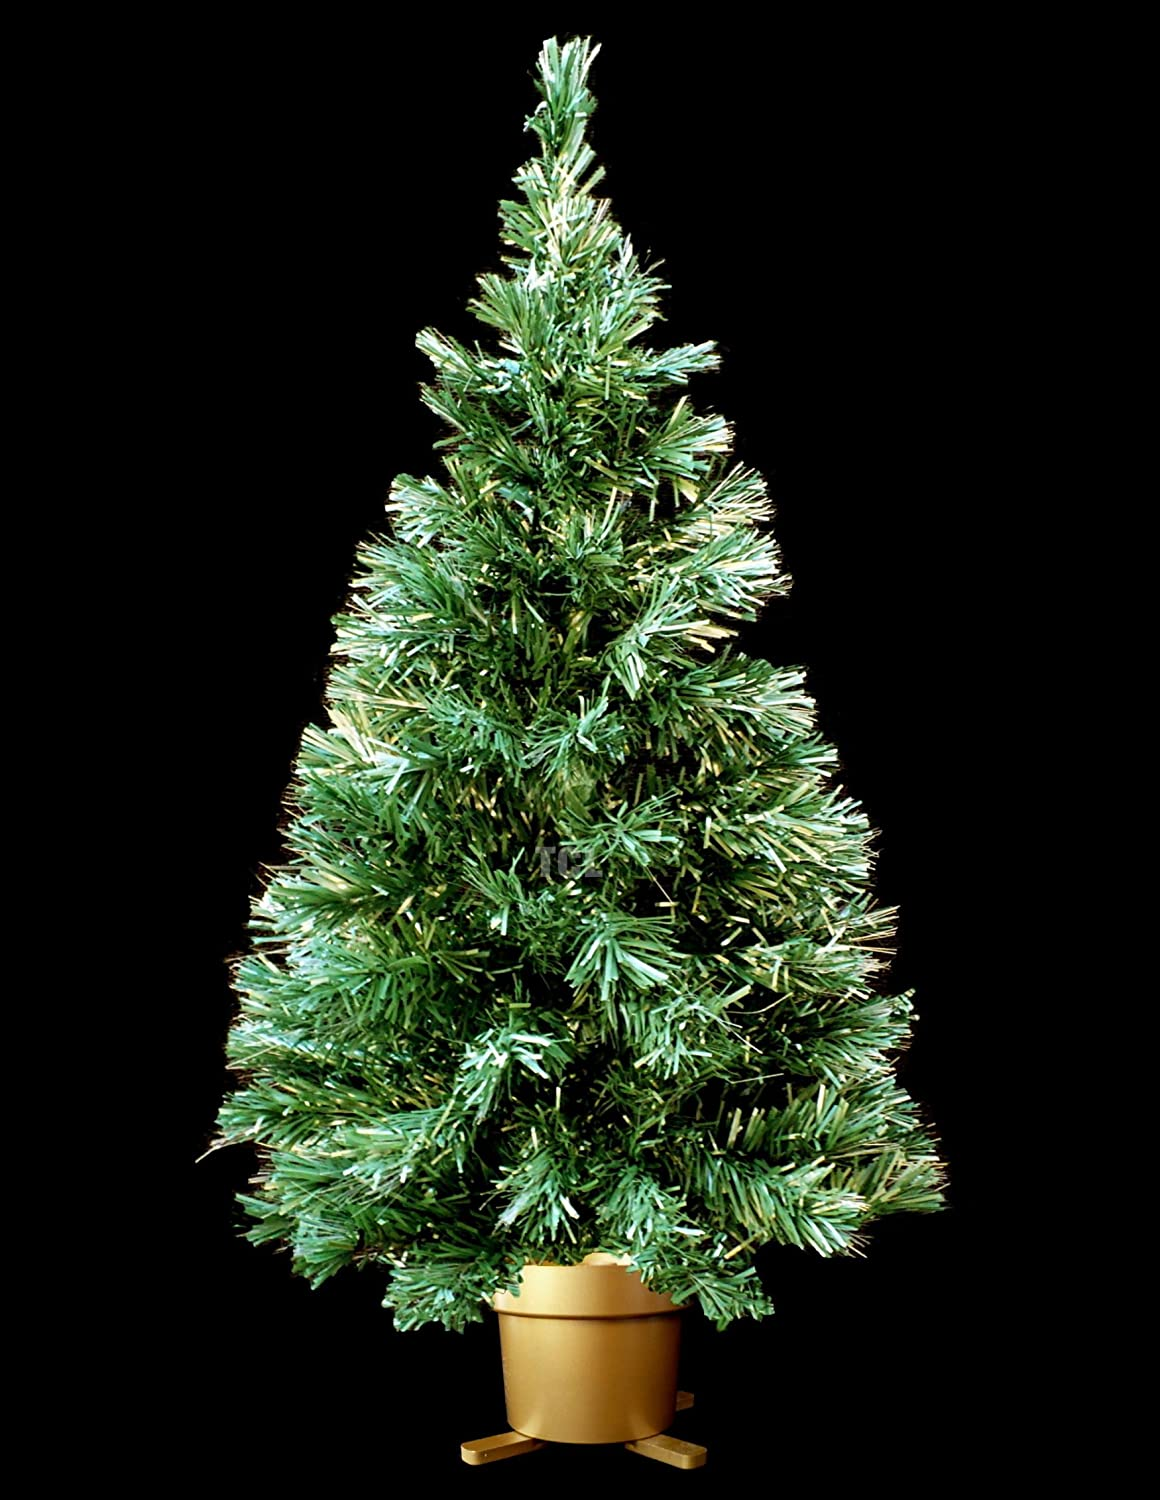 Amazon.com: Holiday Time 32 Inch Green Fiber Optic Christmas Tree ...